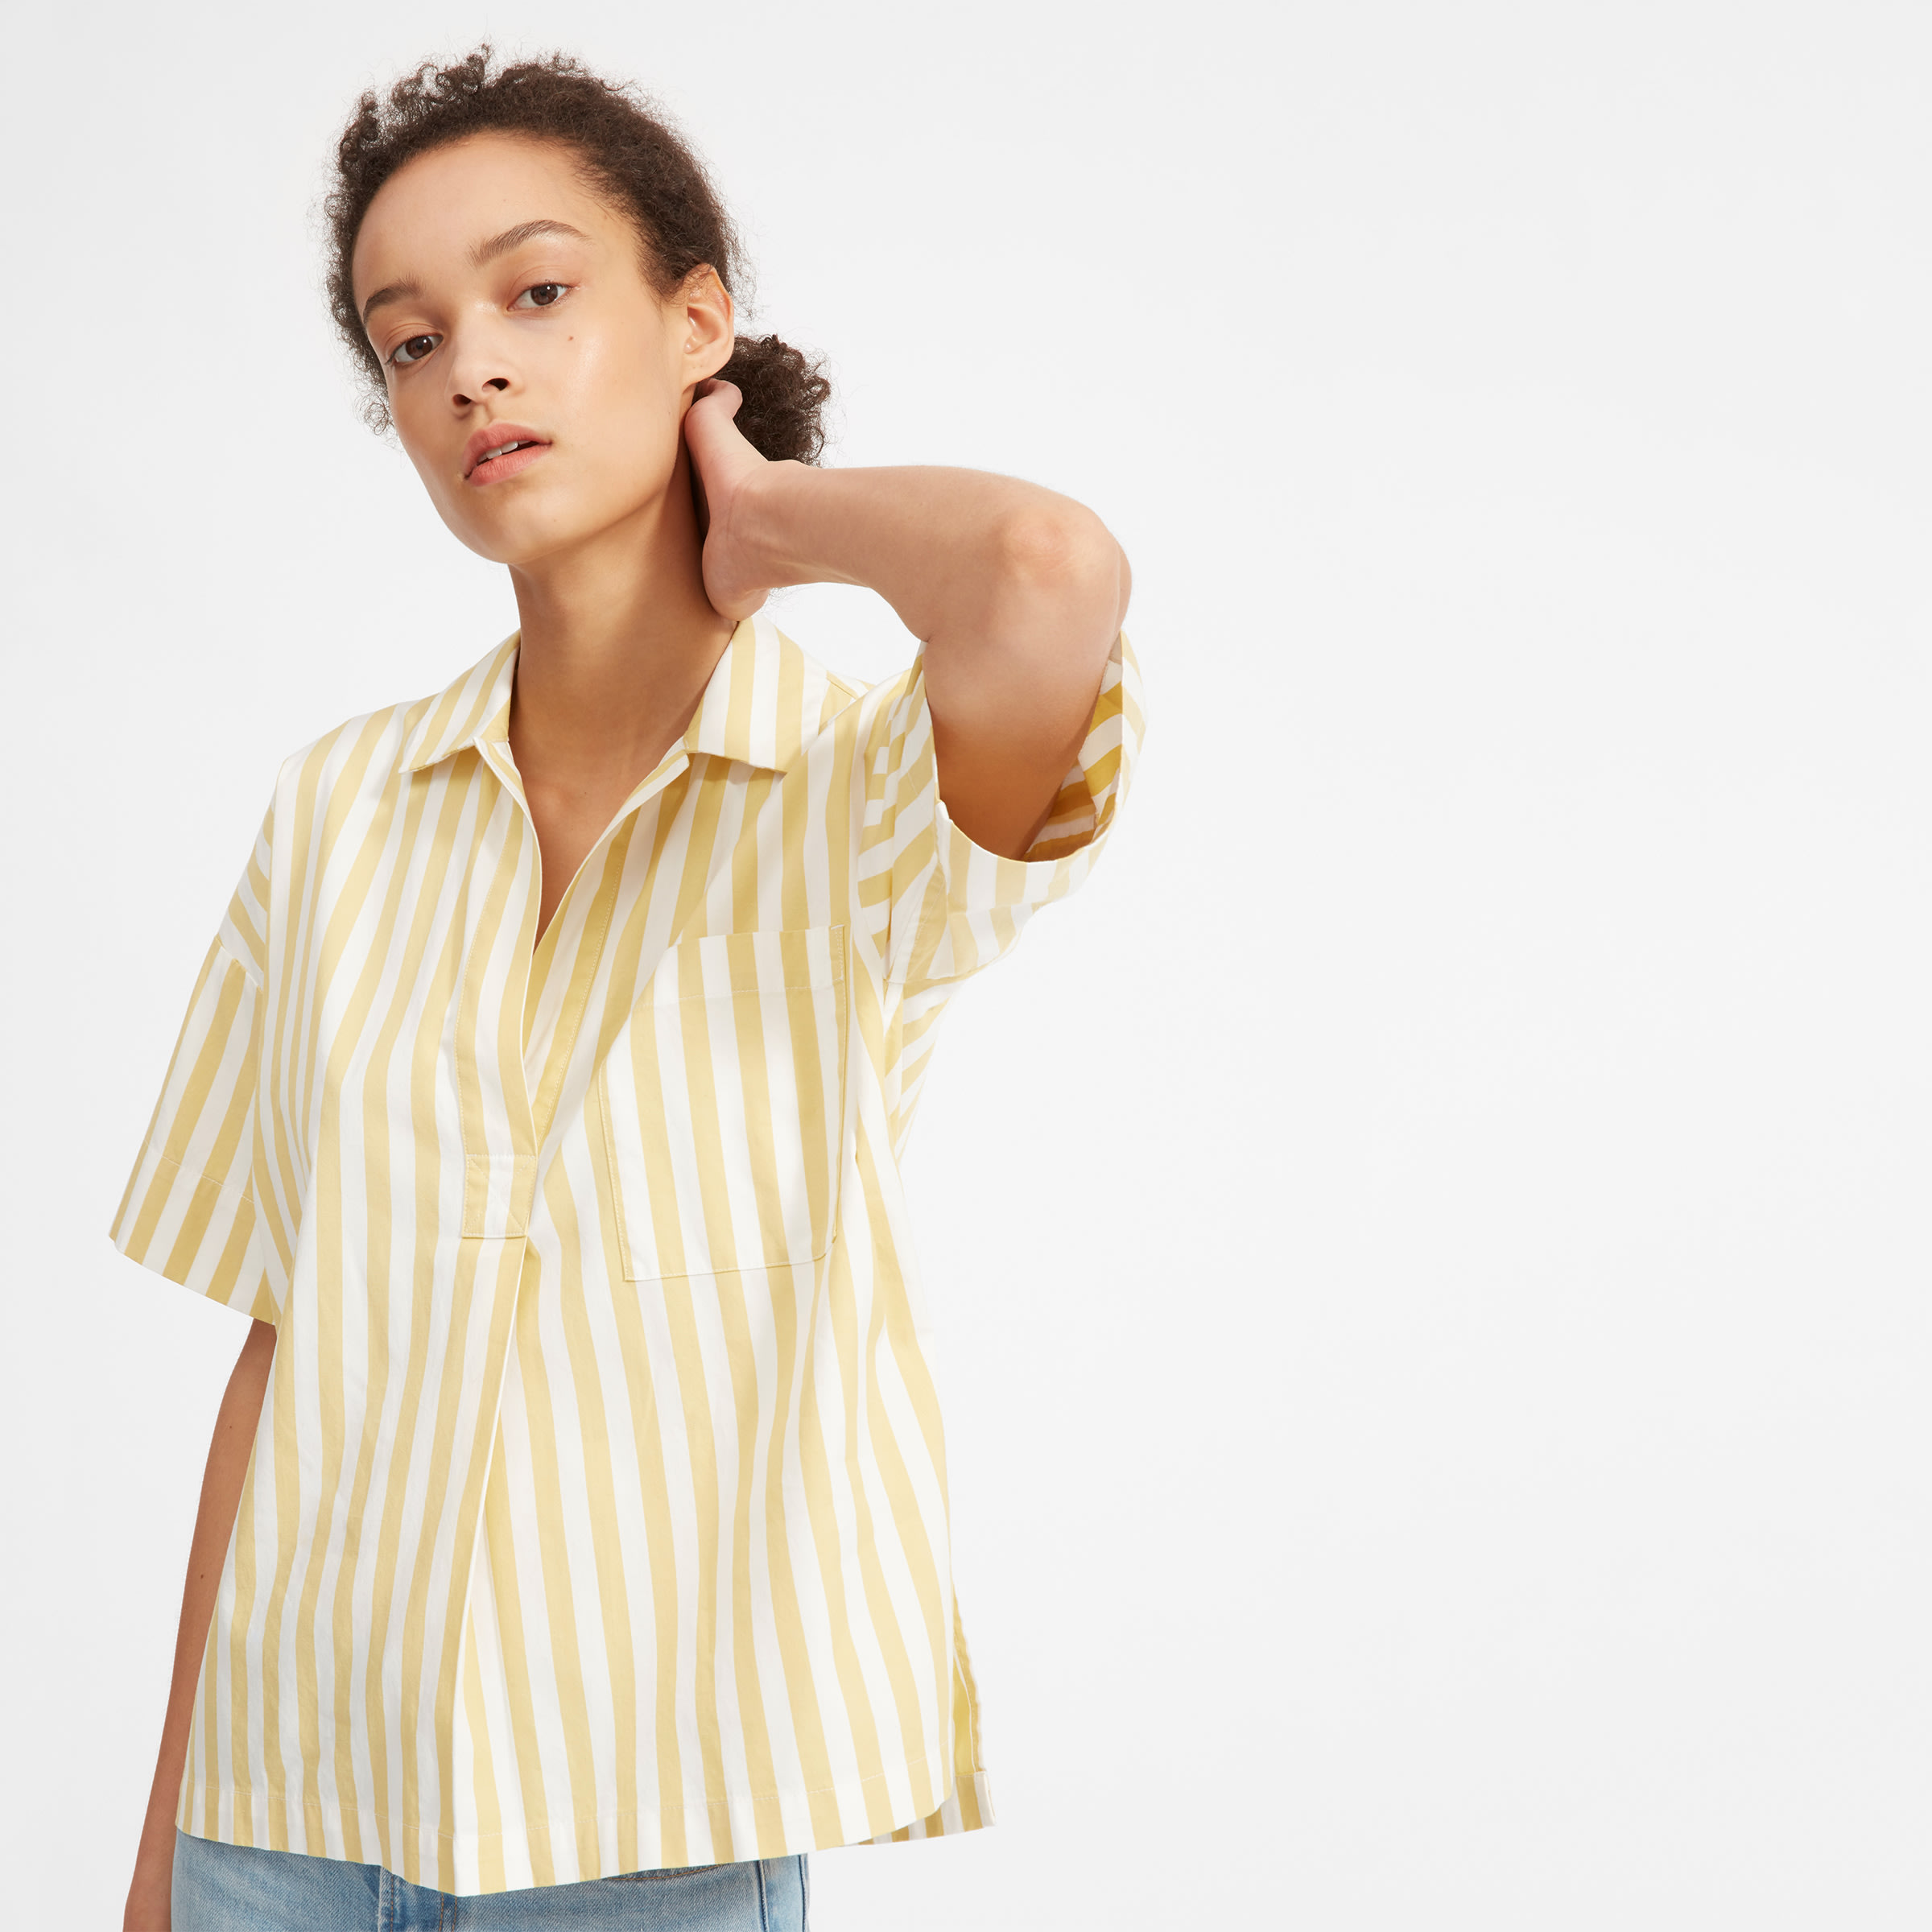 fe91caa46f1 Women's Cotton Short-Sleeve Popover Shirt | Everlane